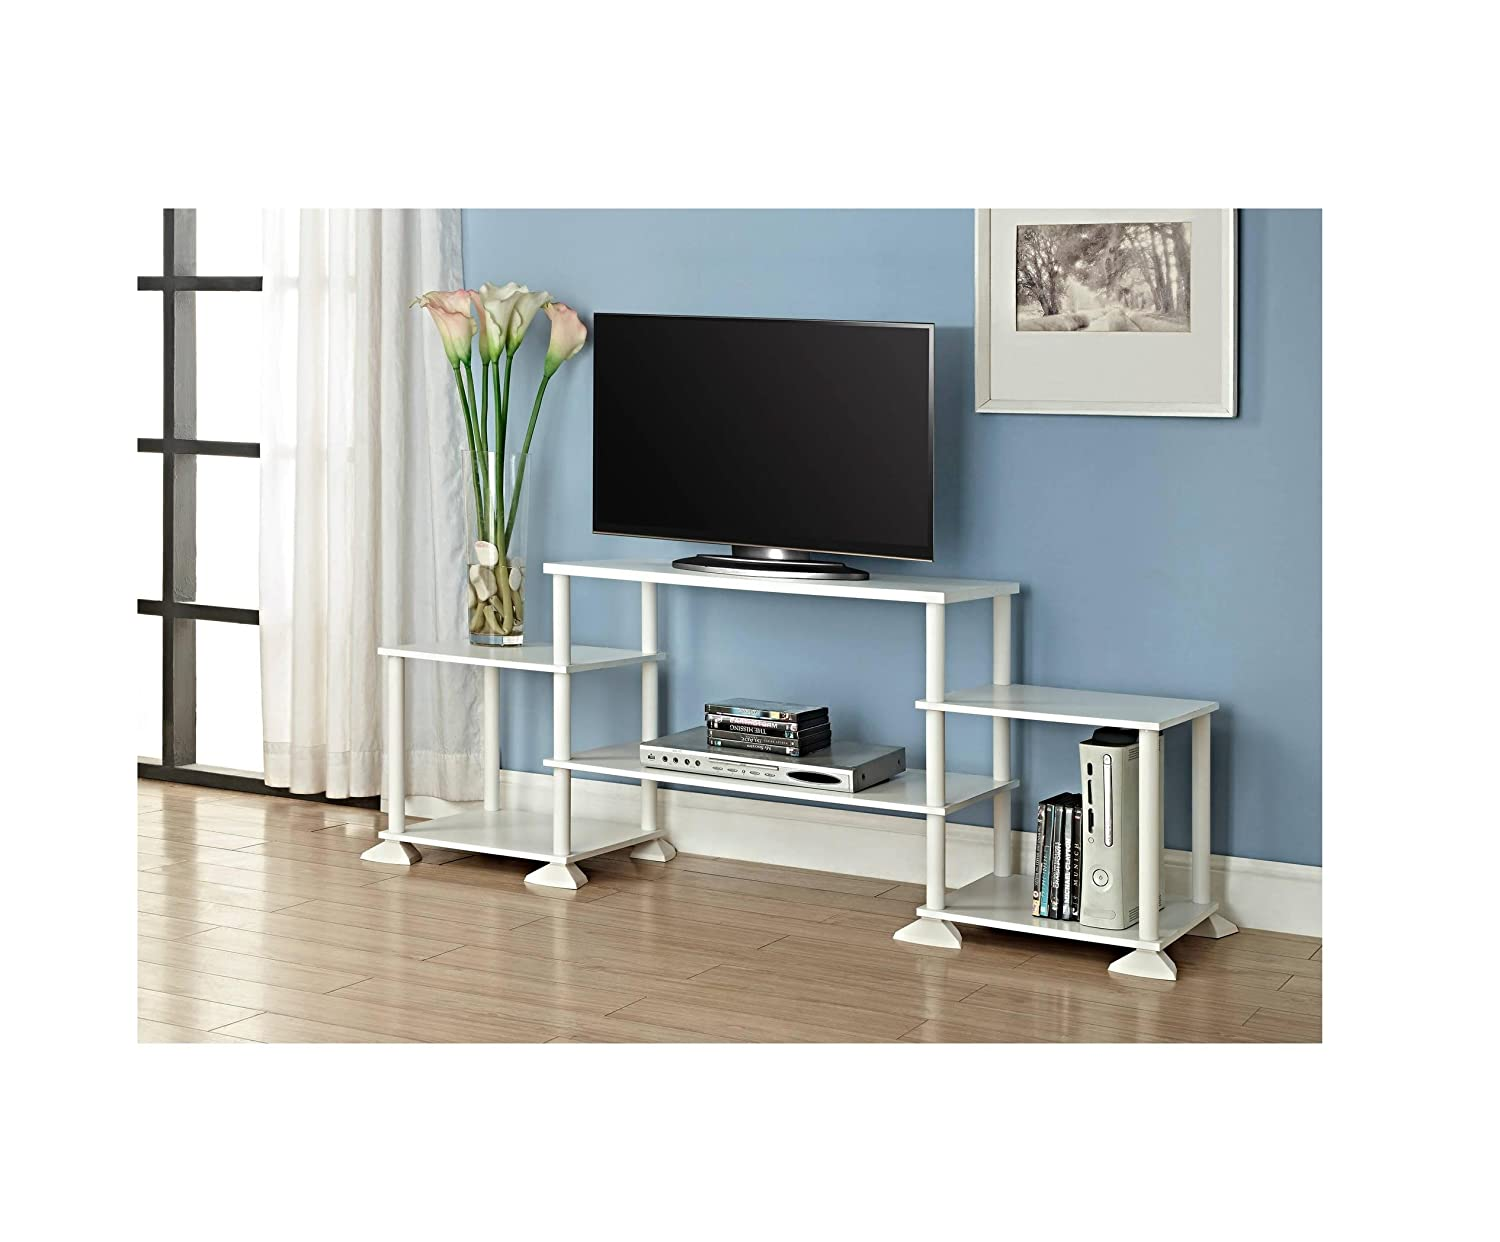 Amazon White TV Stand For TVs Up To 40 Entertainment Center 3 Cube Storage W Wire Clips Kitchen Dining